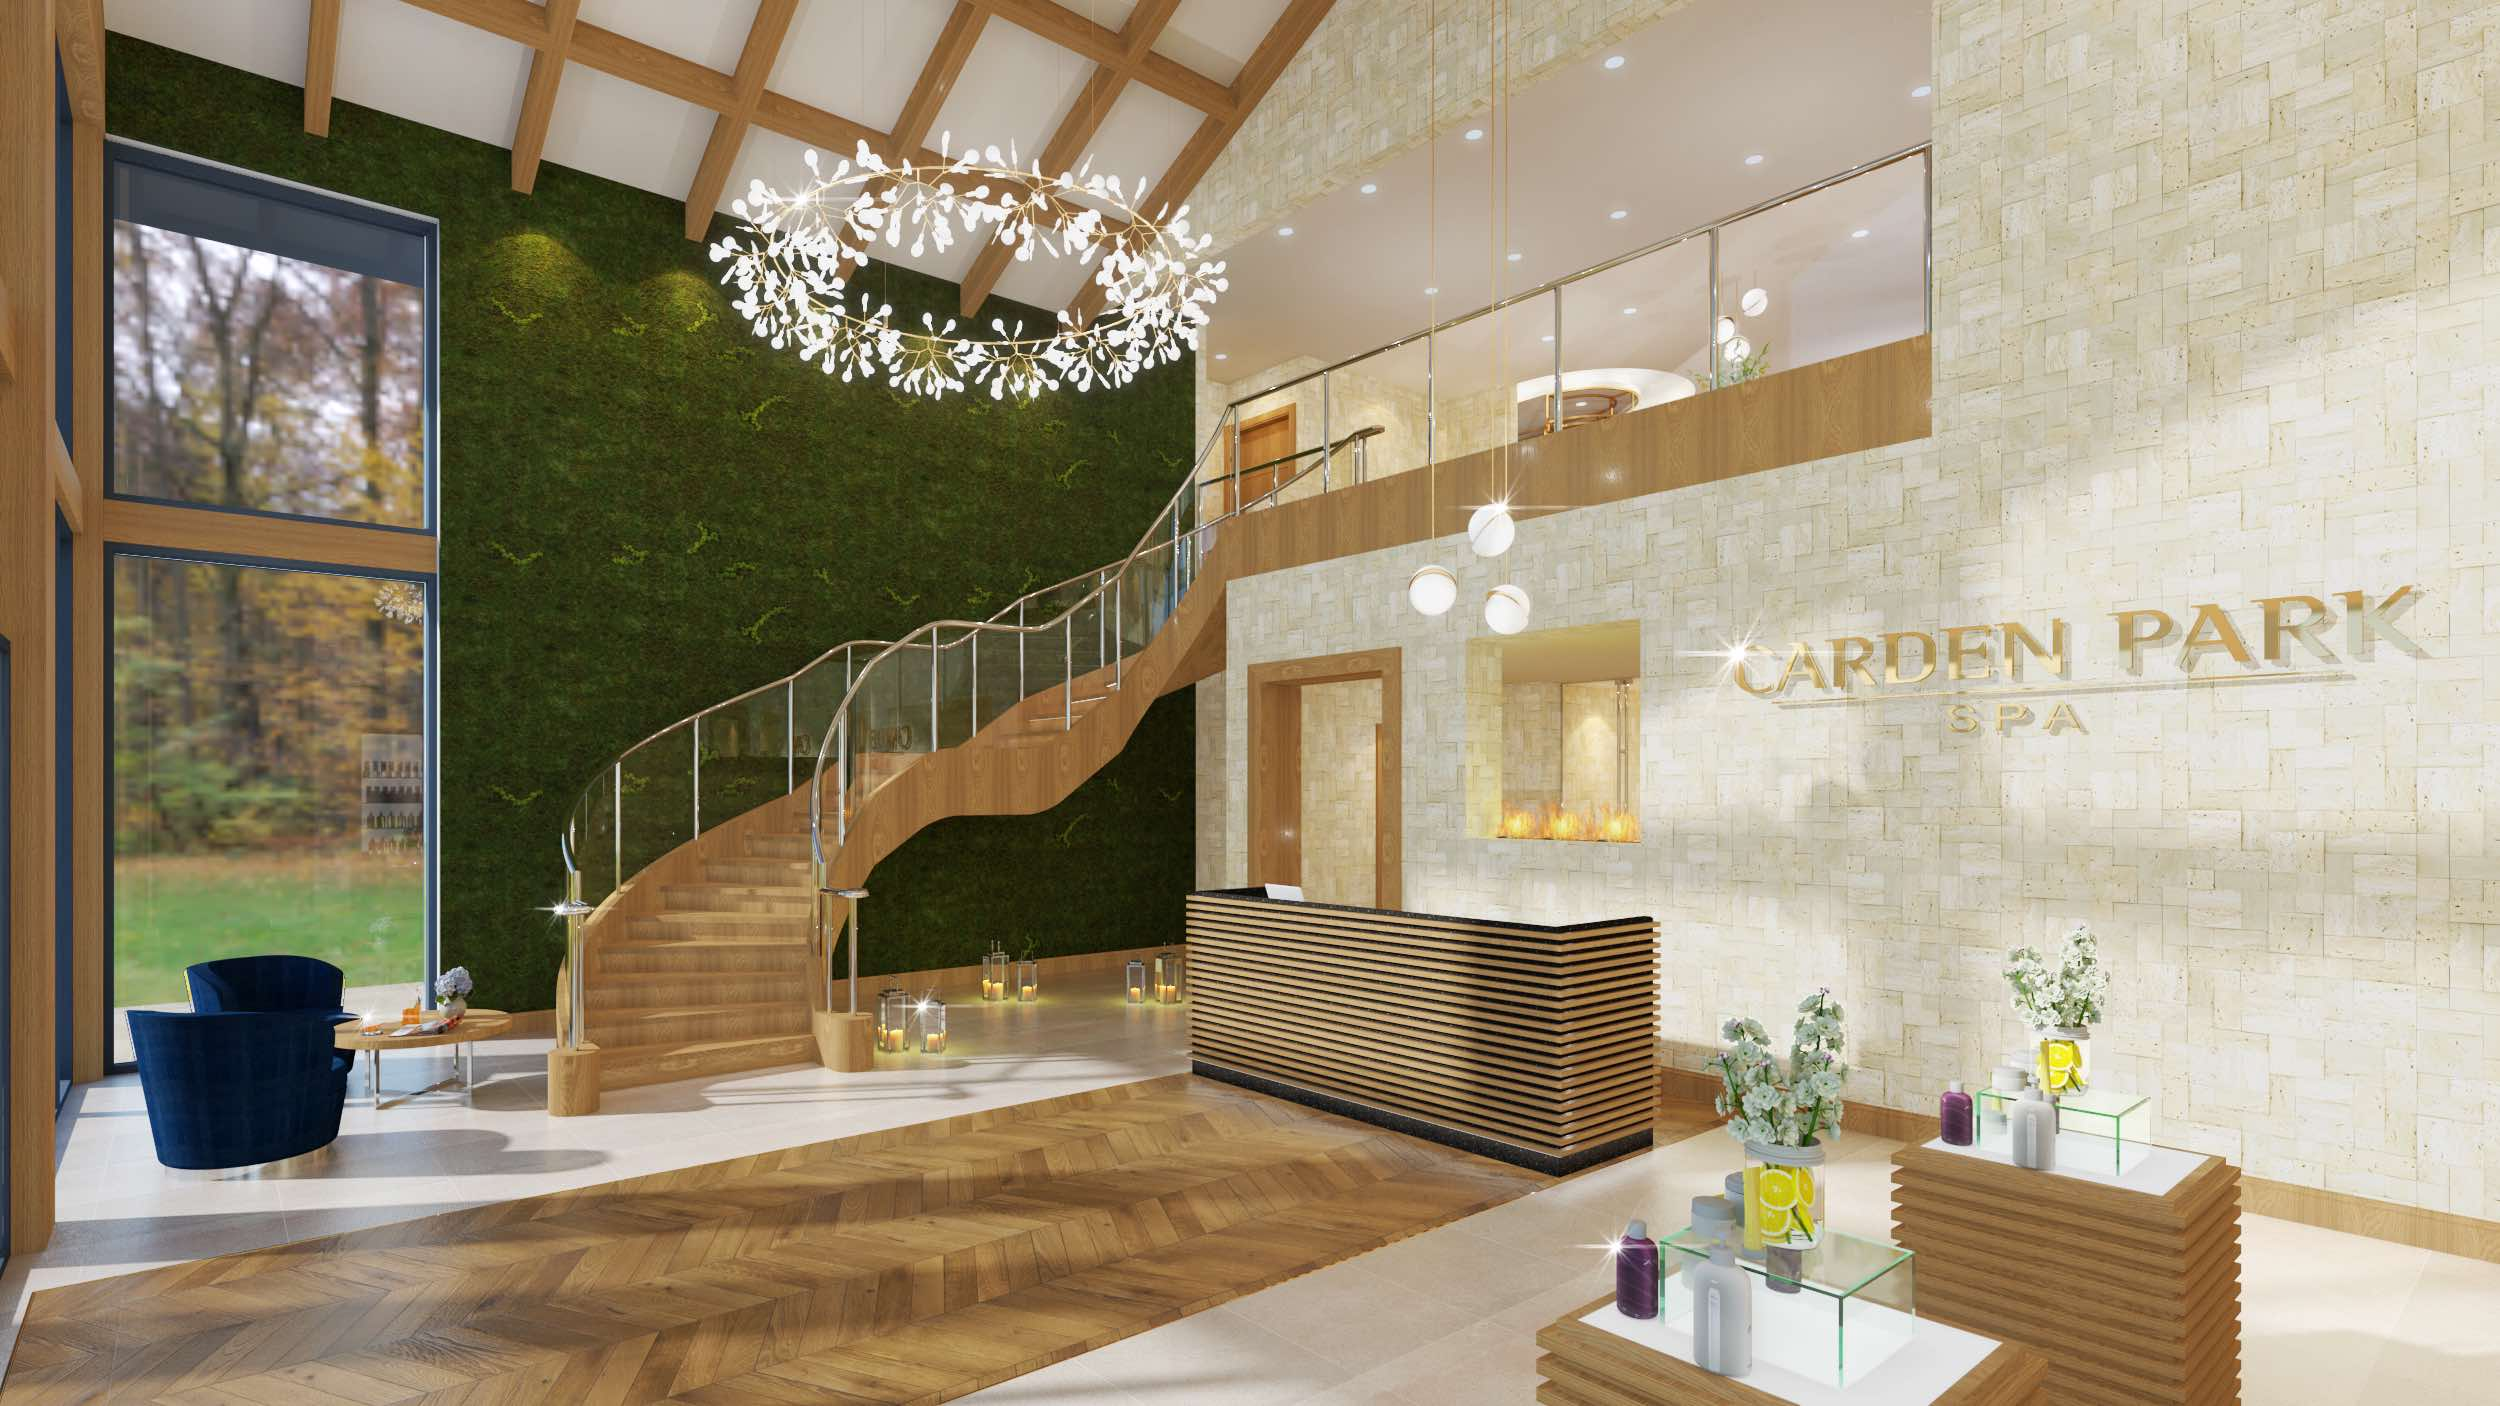 The Spa at Carden reception area